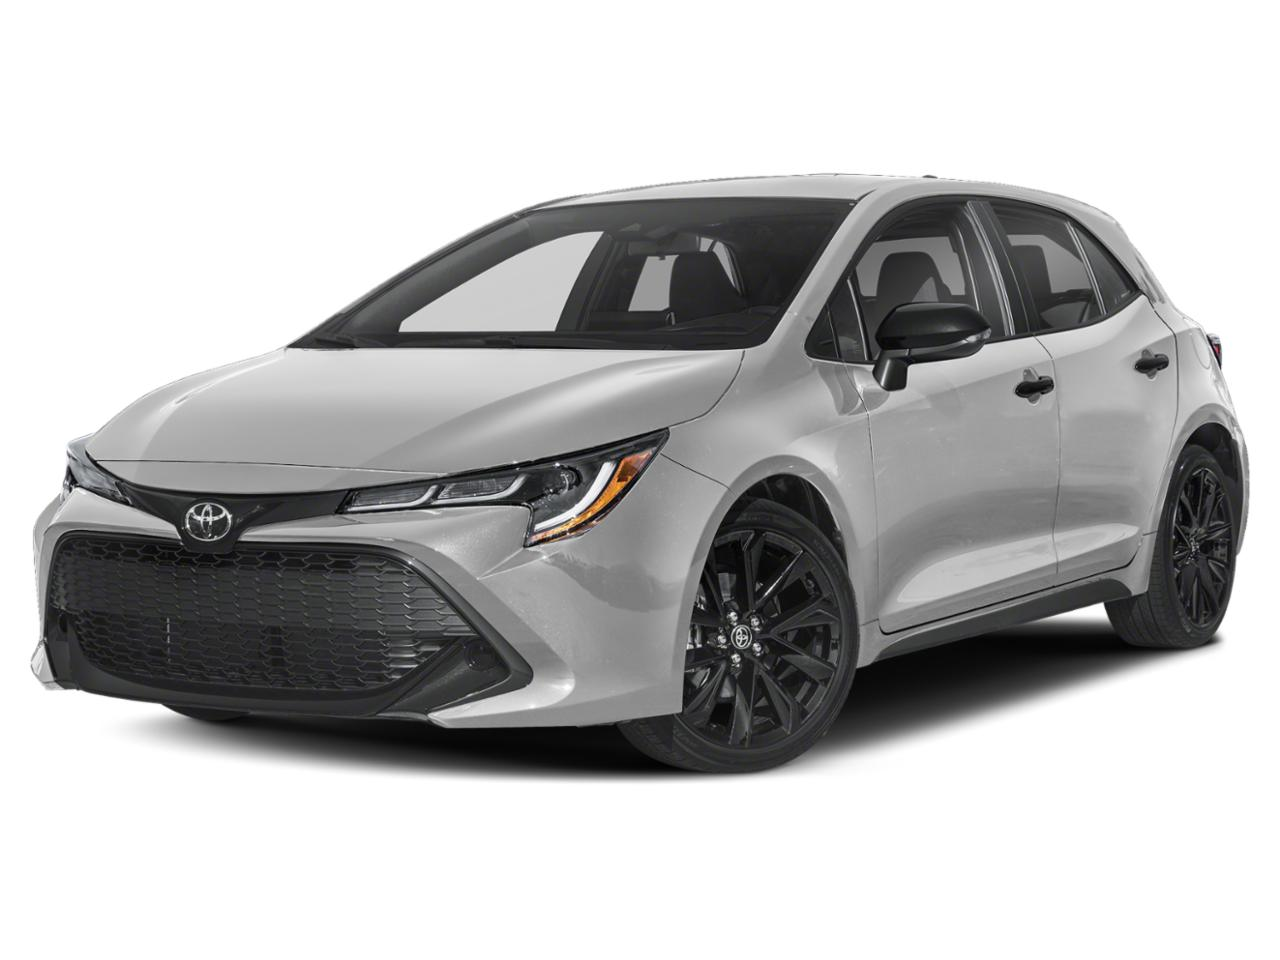 2021 Toyota Corolla Hatchback Vehicle Photo in Oshkosh, WI 54904